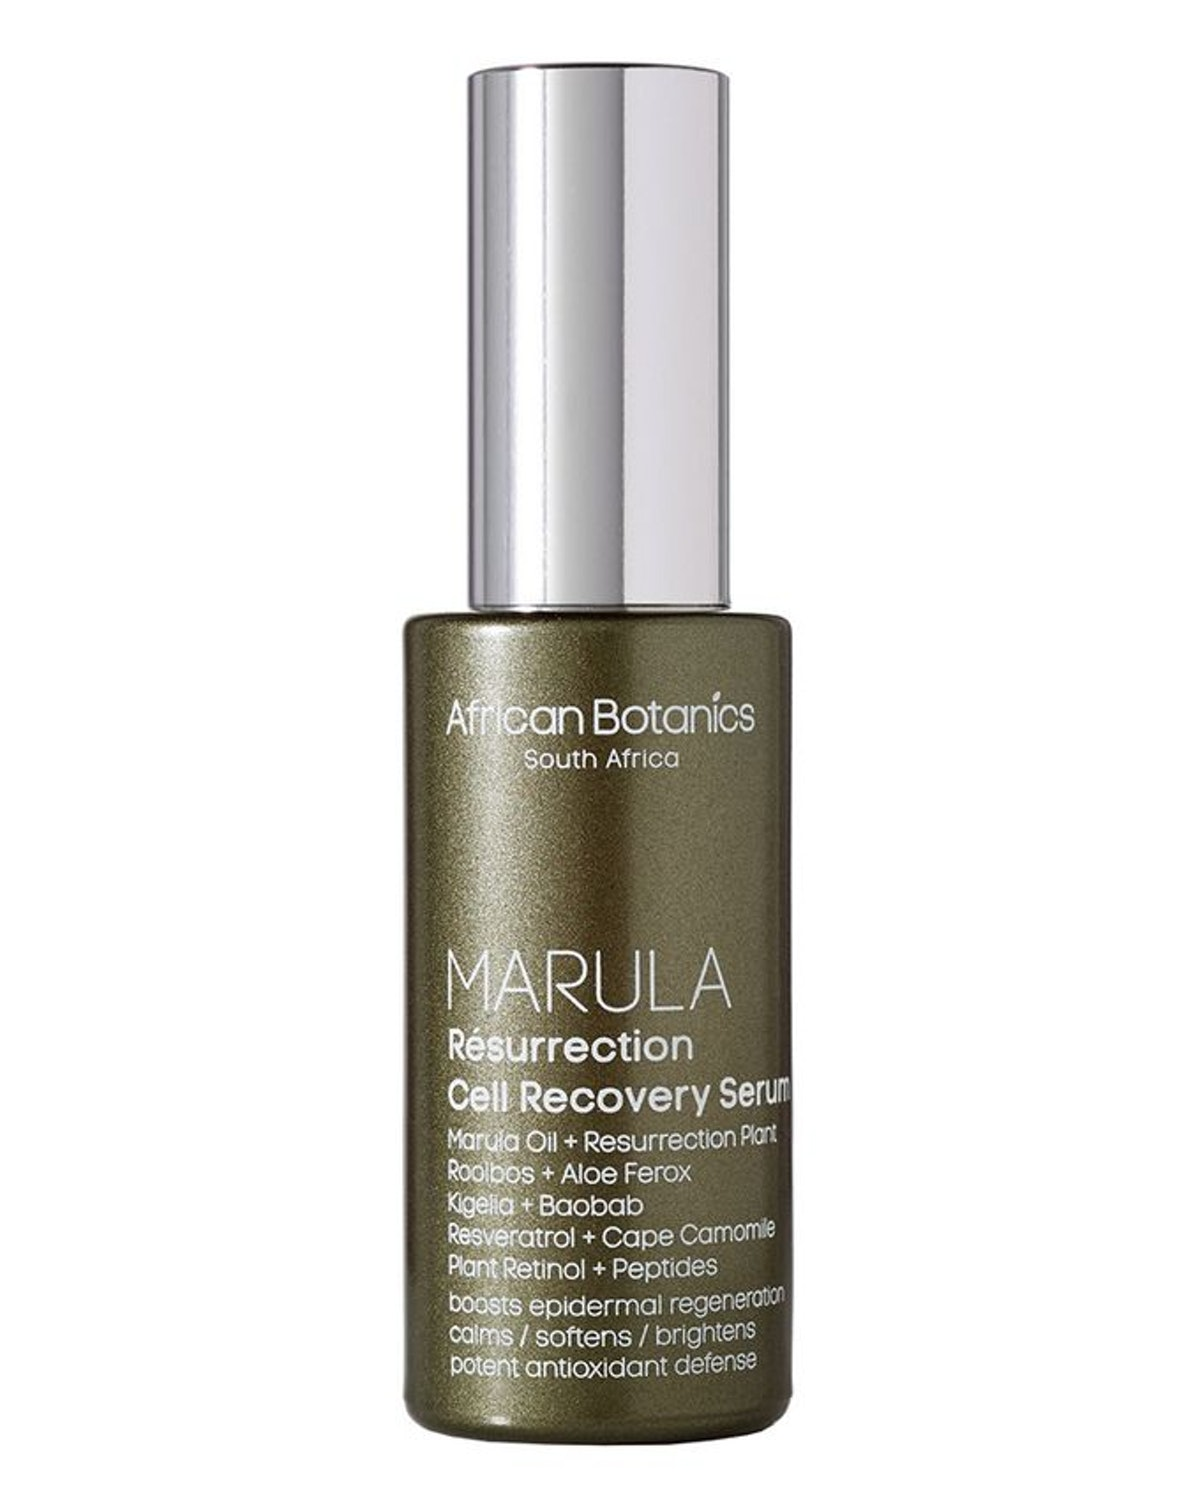 Resurrection Cell Recovery Serum